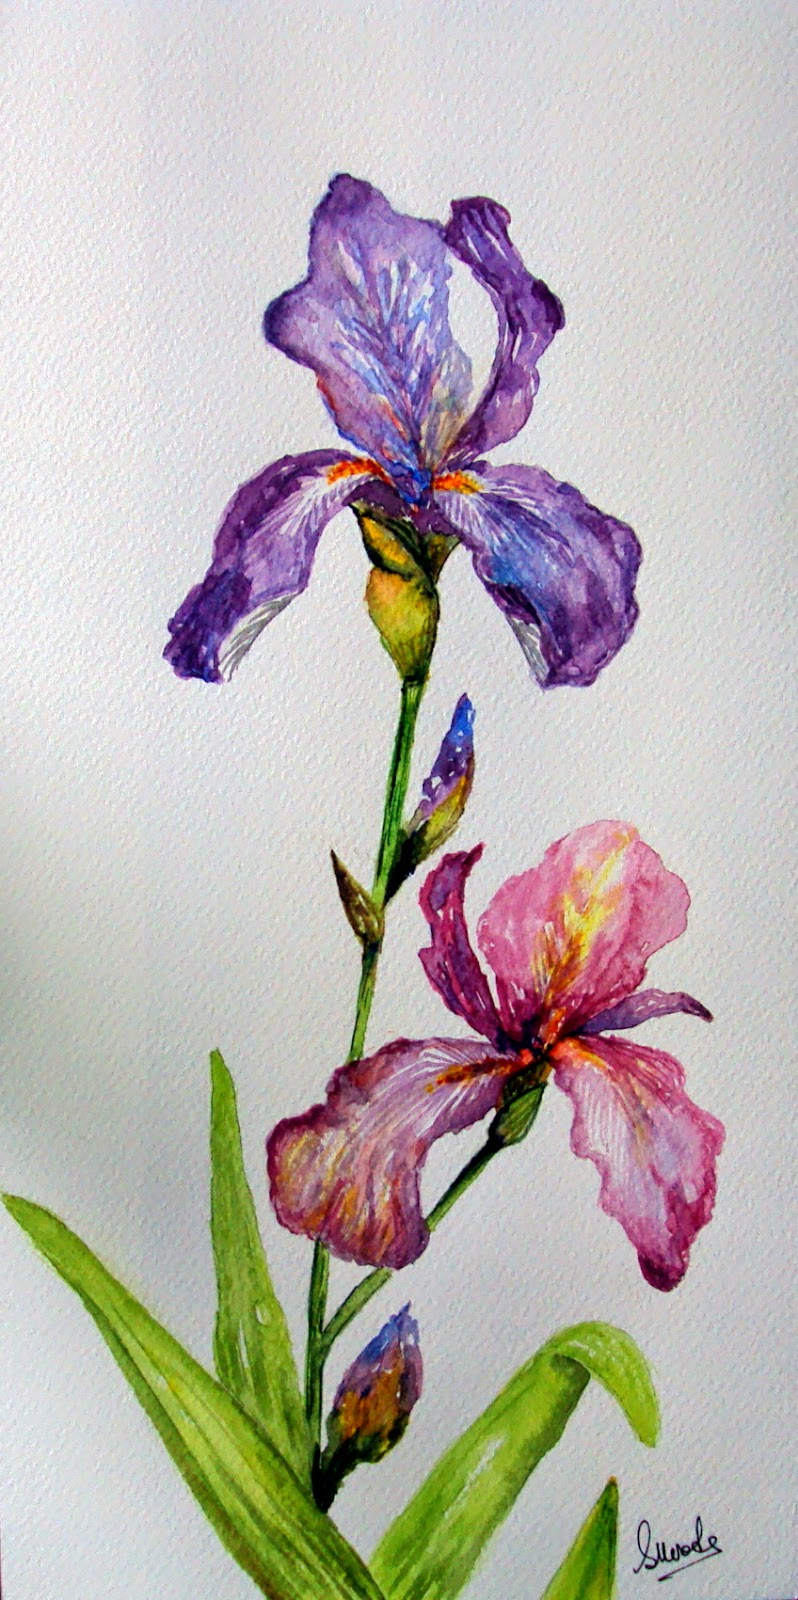 purple, iris, flowers, floral, painting, handmade, twin, buds, petals, watercolor,watercolour, nature, garden